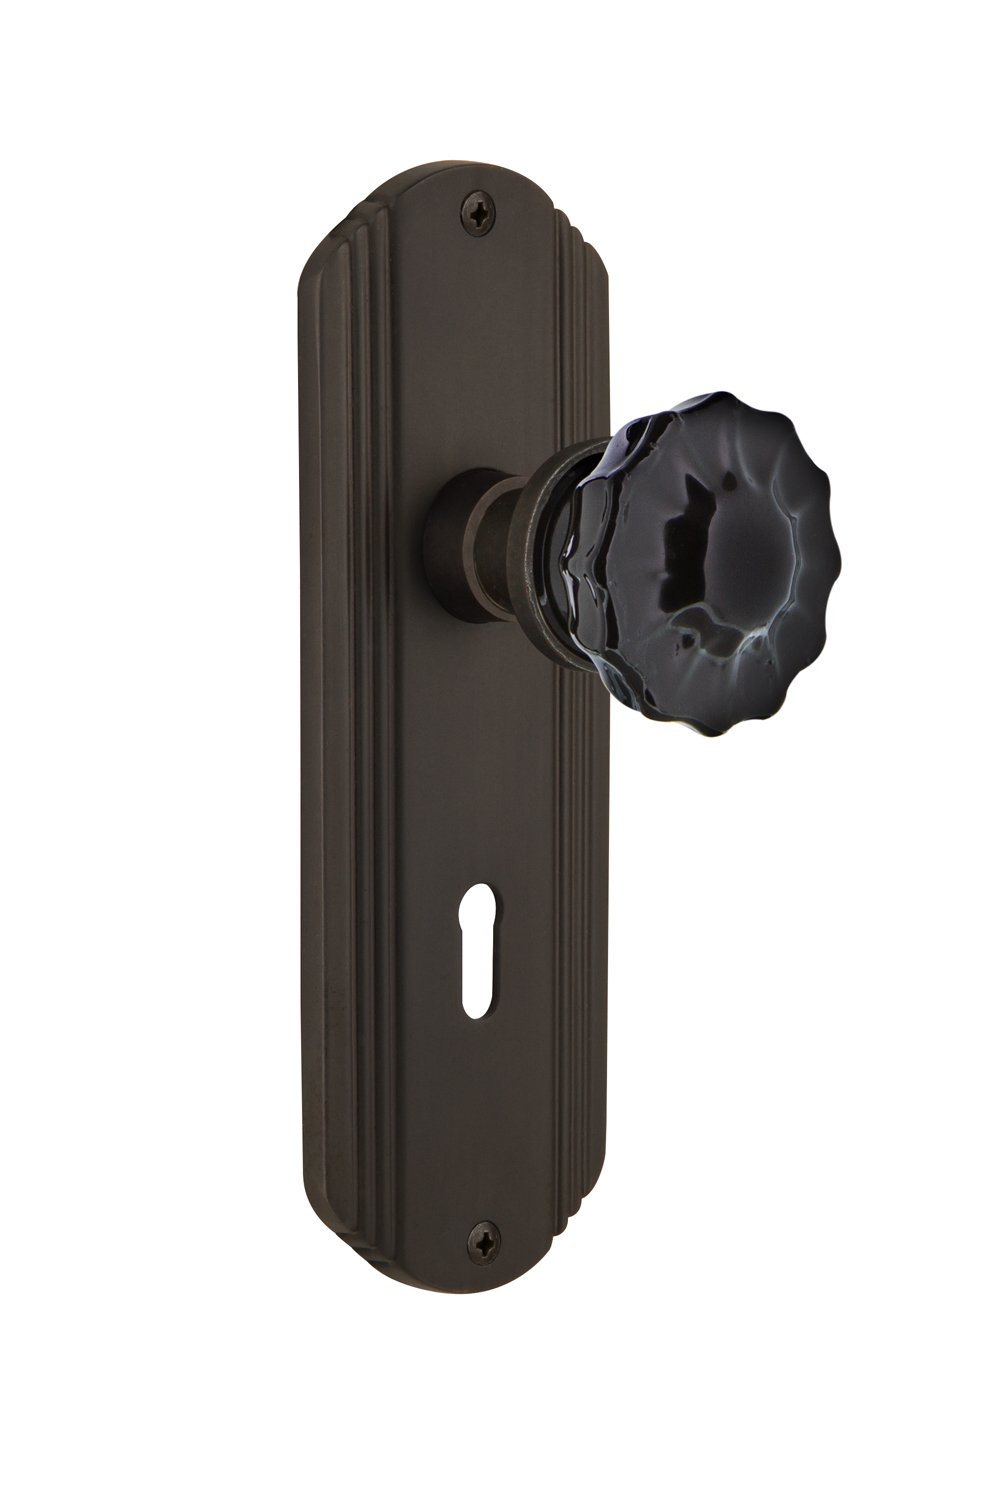 Nostalgic Warehouse 727122 Deco Plate with Keyhole Double Dummy Crystal Black Glass Door Knob in Antique Brass